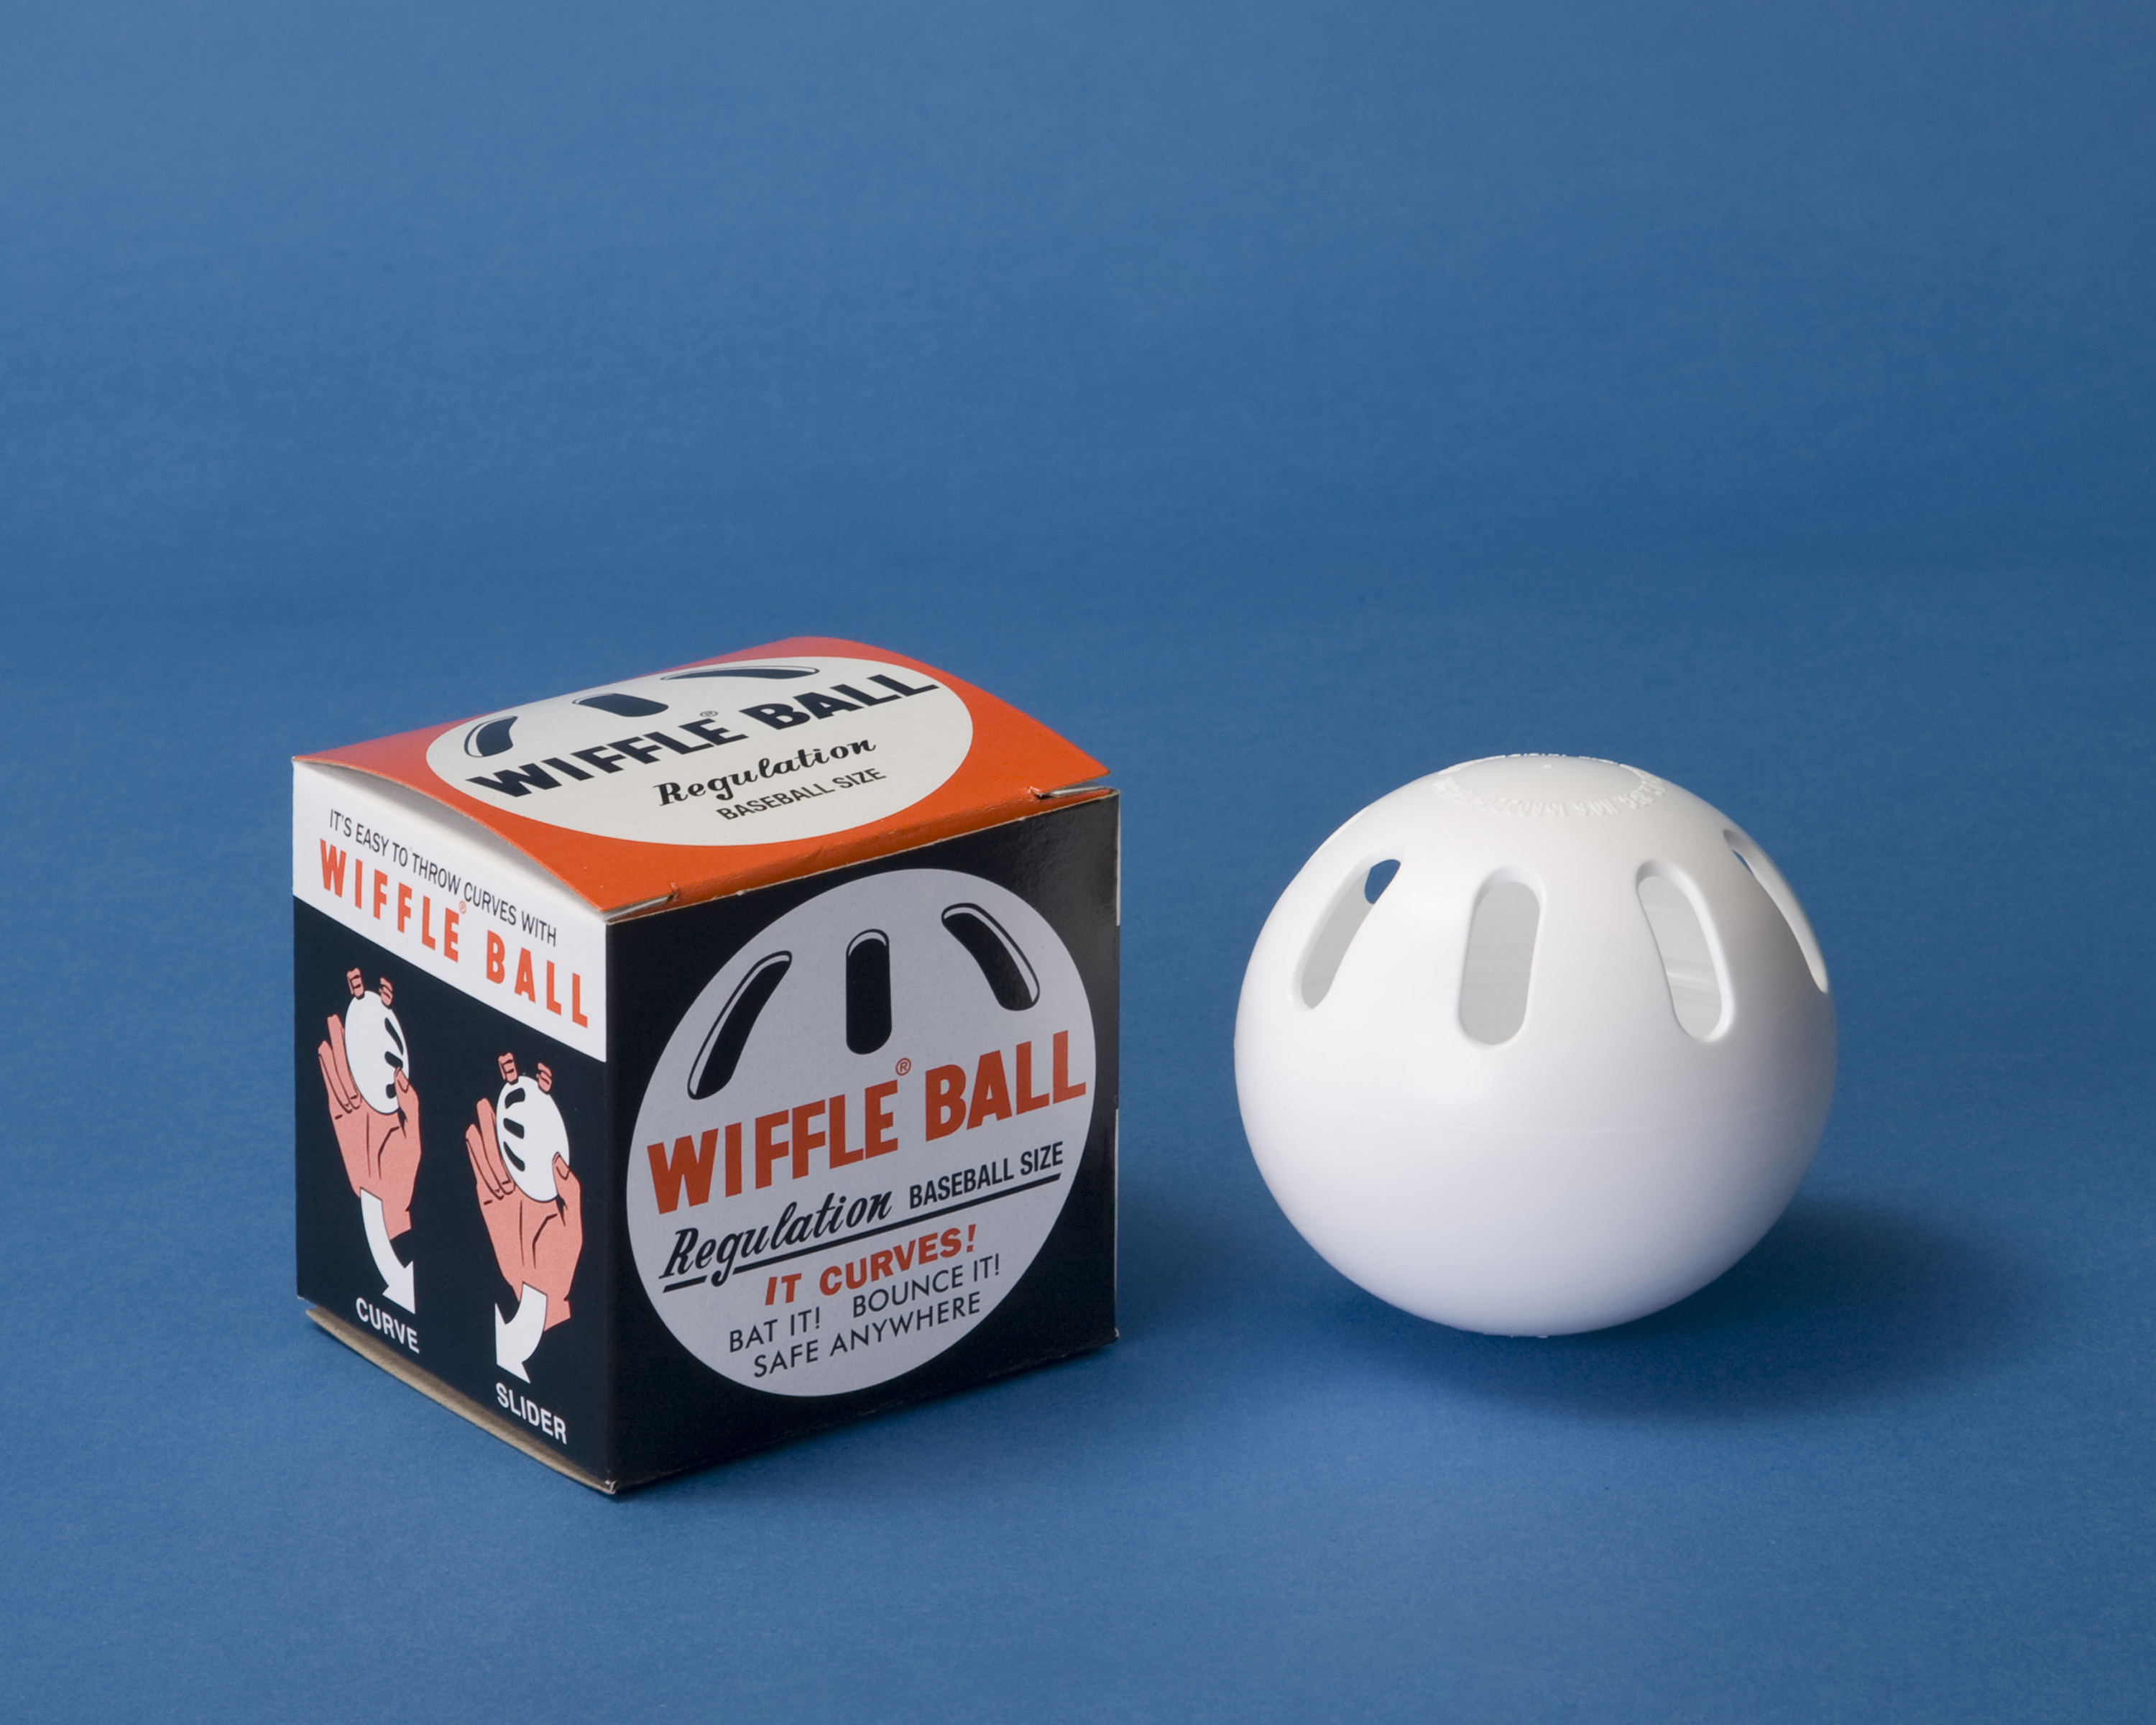 After 60 Years, Wiffle Ball Still Soars